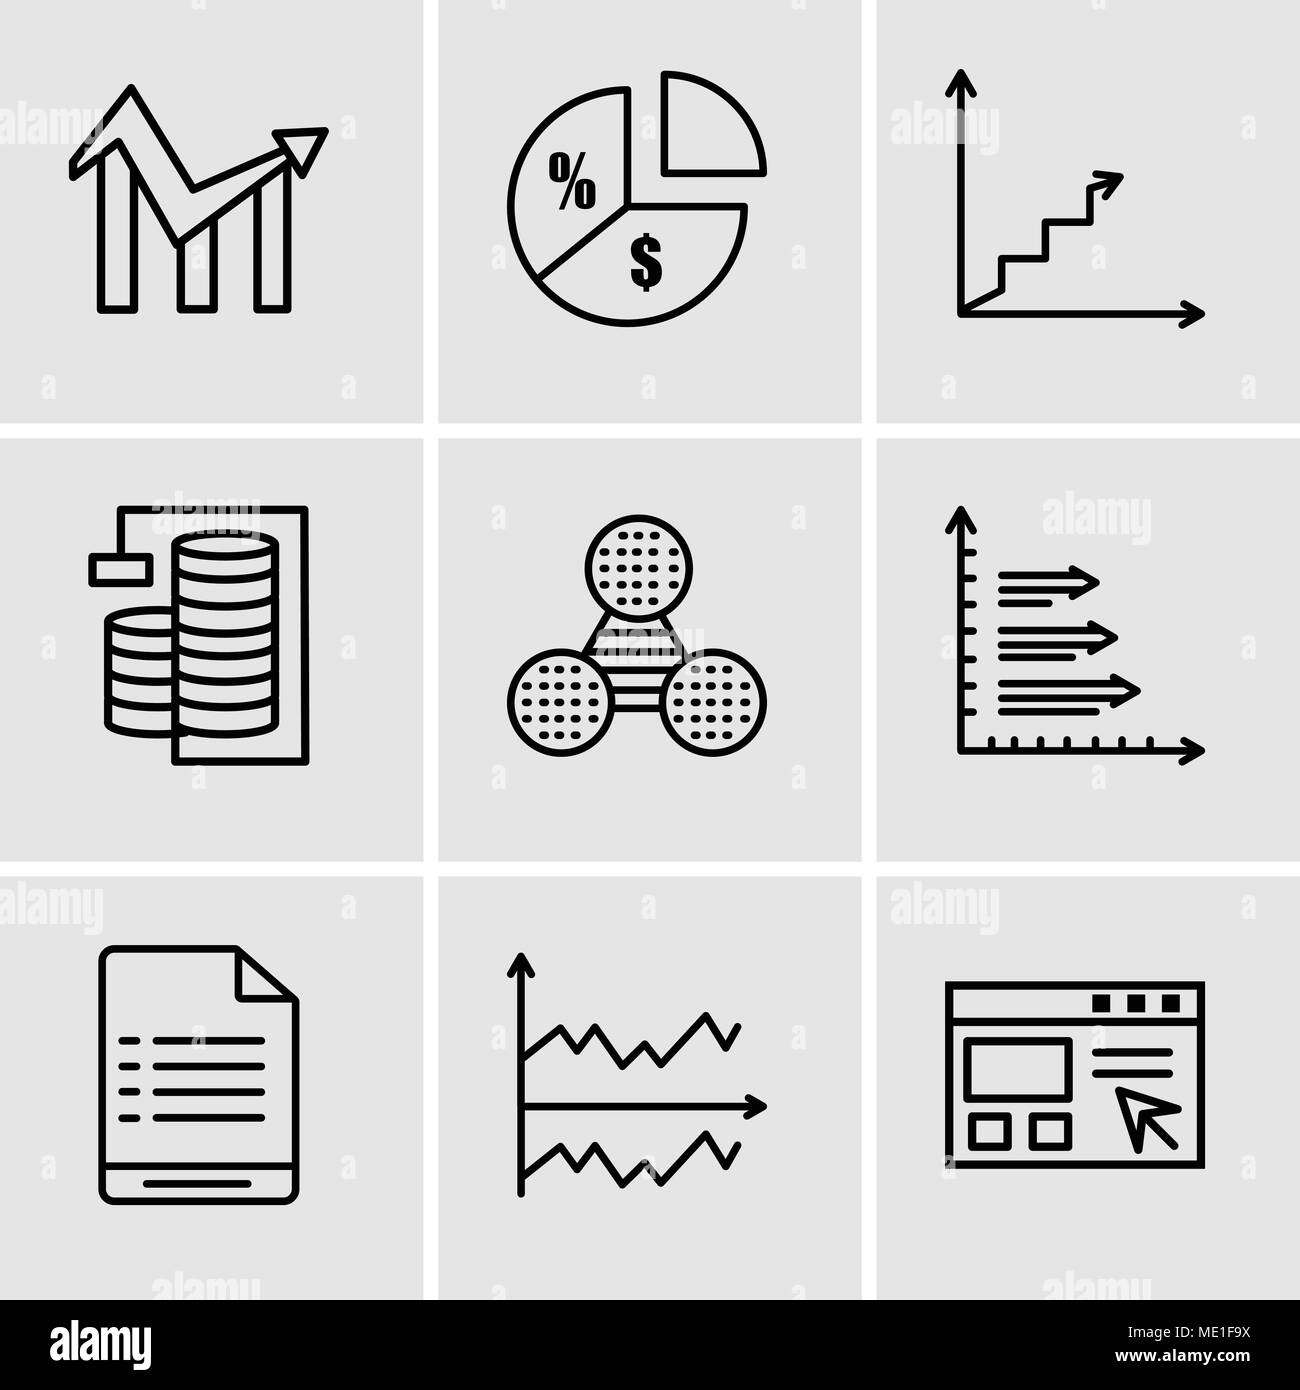 Set Of 9 simple editable icons such as Data import interface, Chart, User warning, Bars, Pie graphic comparison, Database Analysis, Data analytics asc - Stock Image